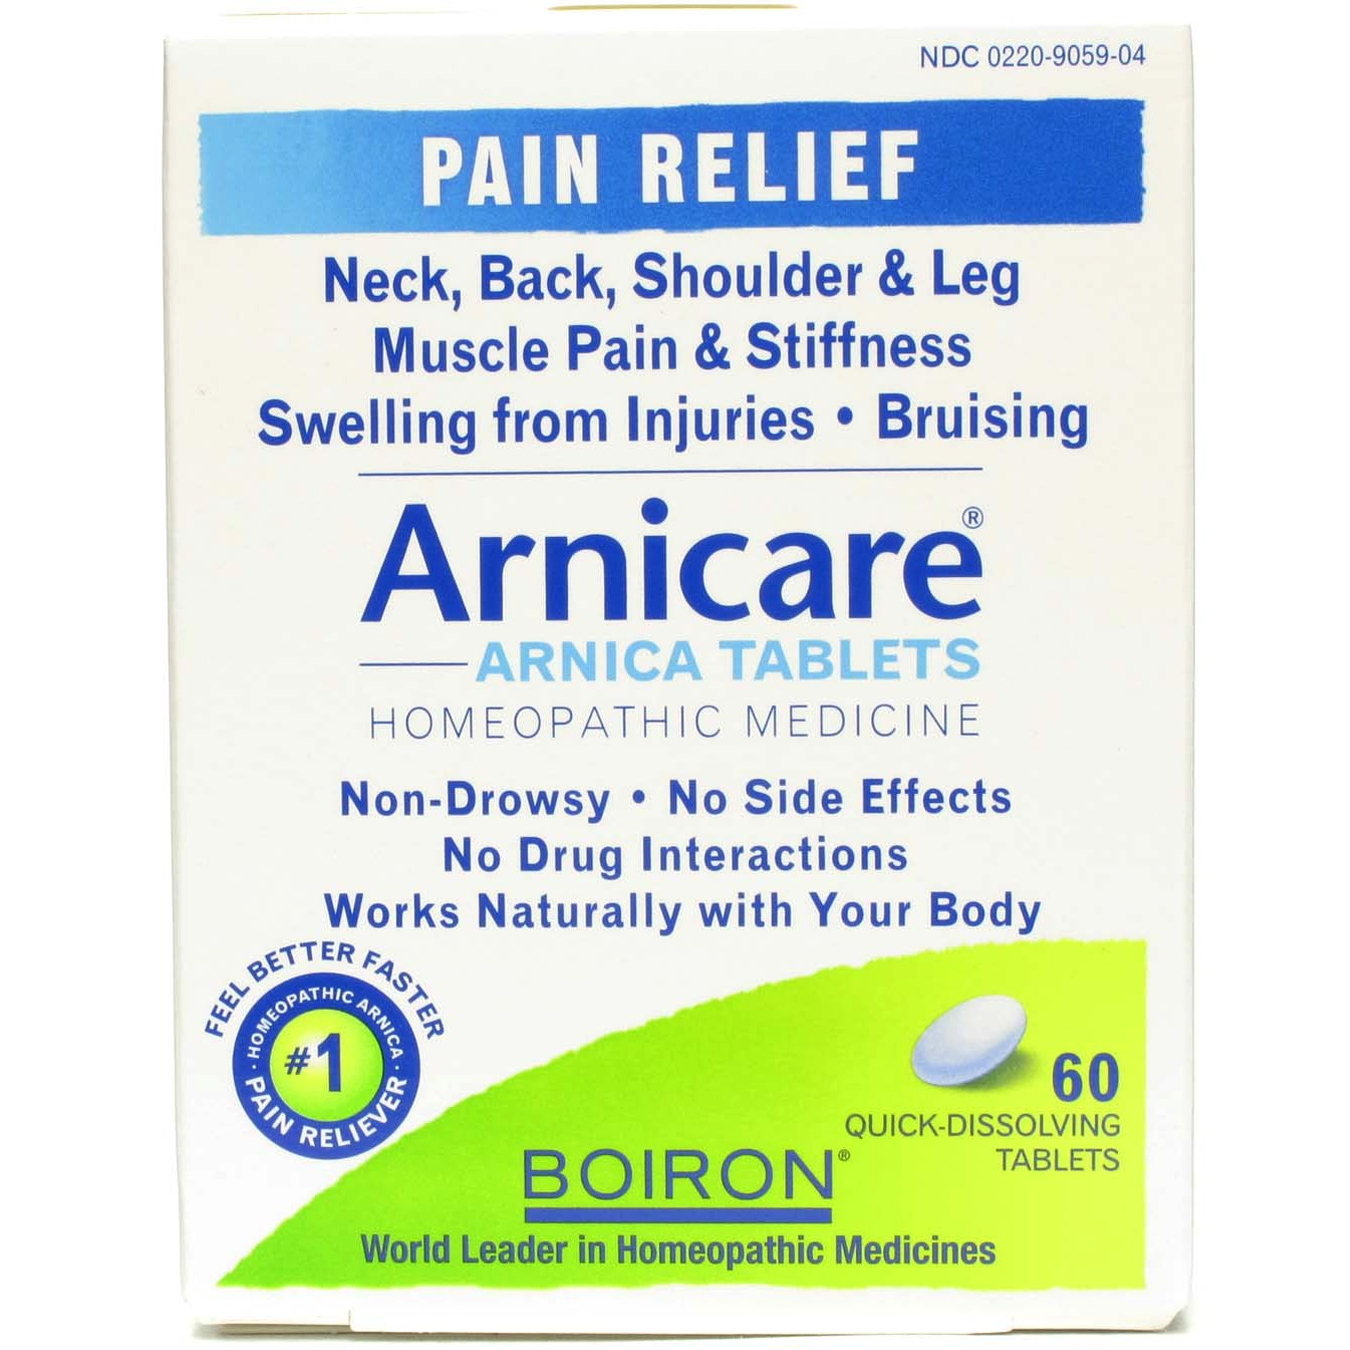 Arnica Tablets Arnicare® by Boiron Inc.